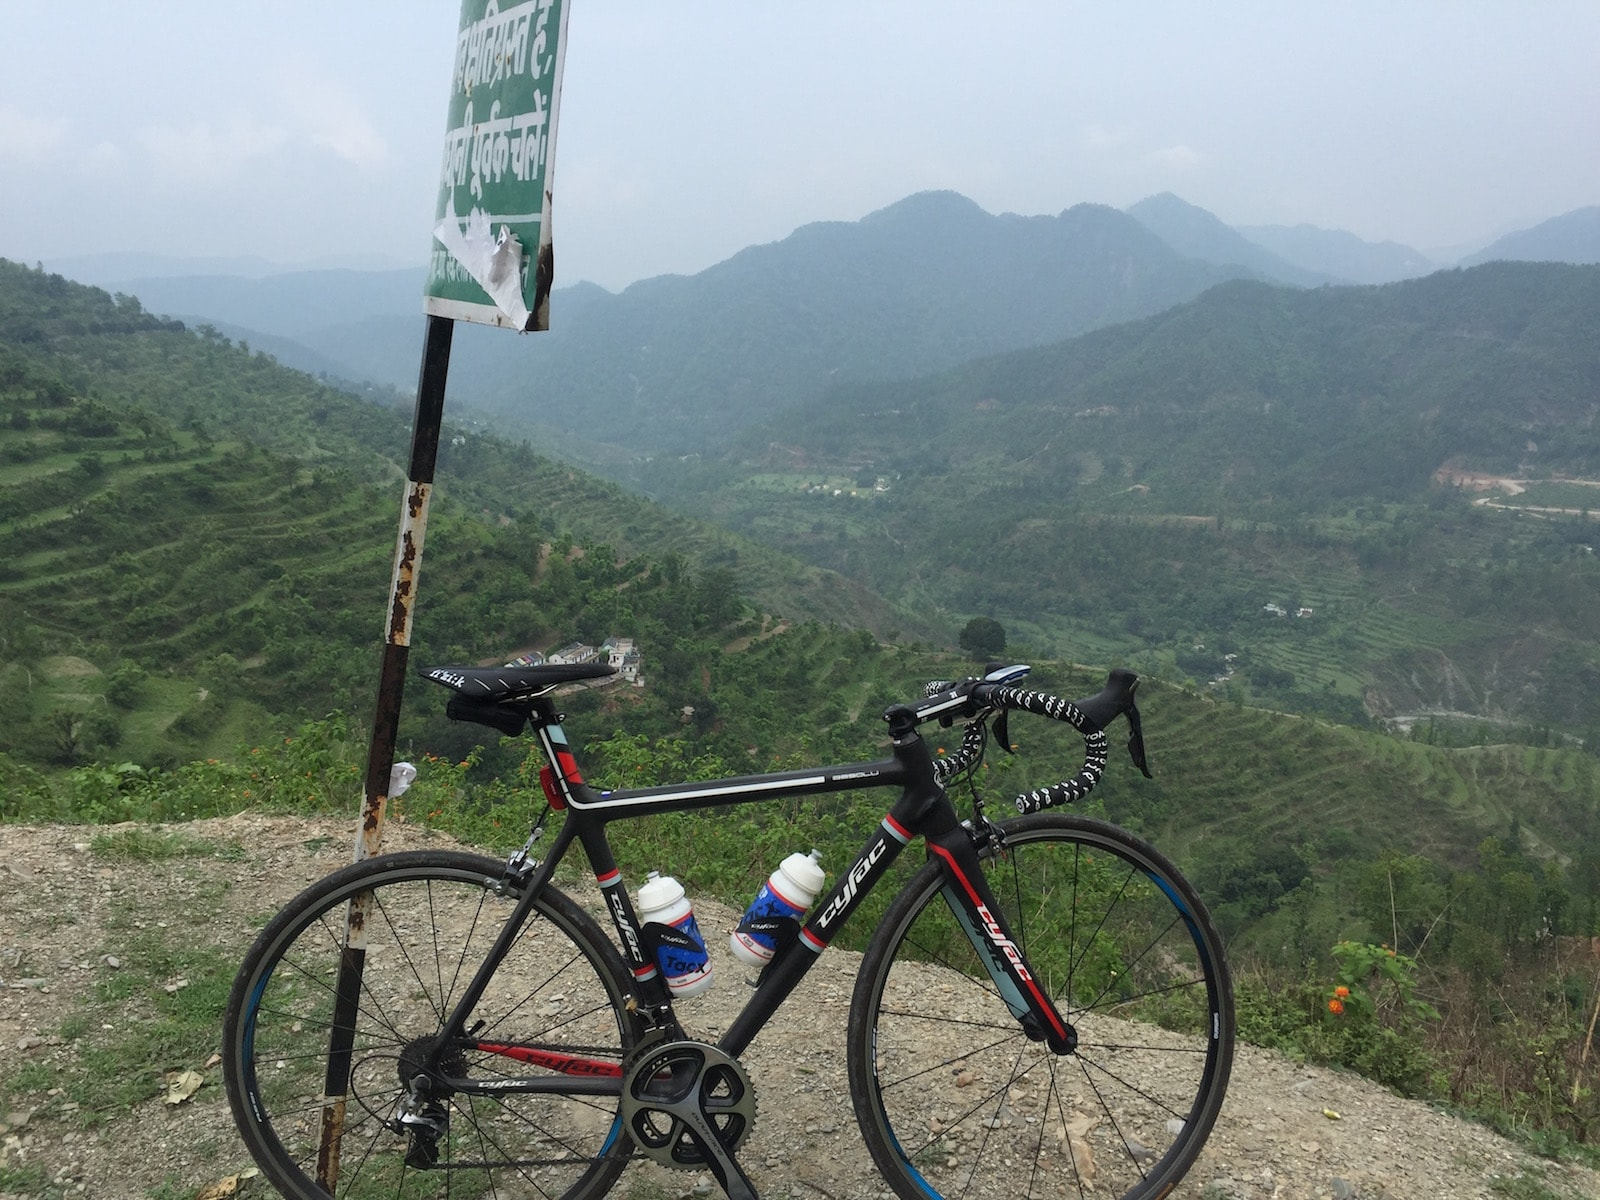 Cycling in India